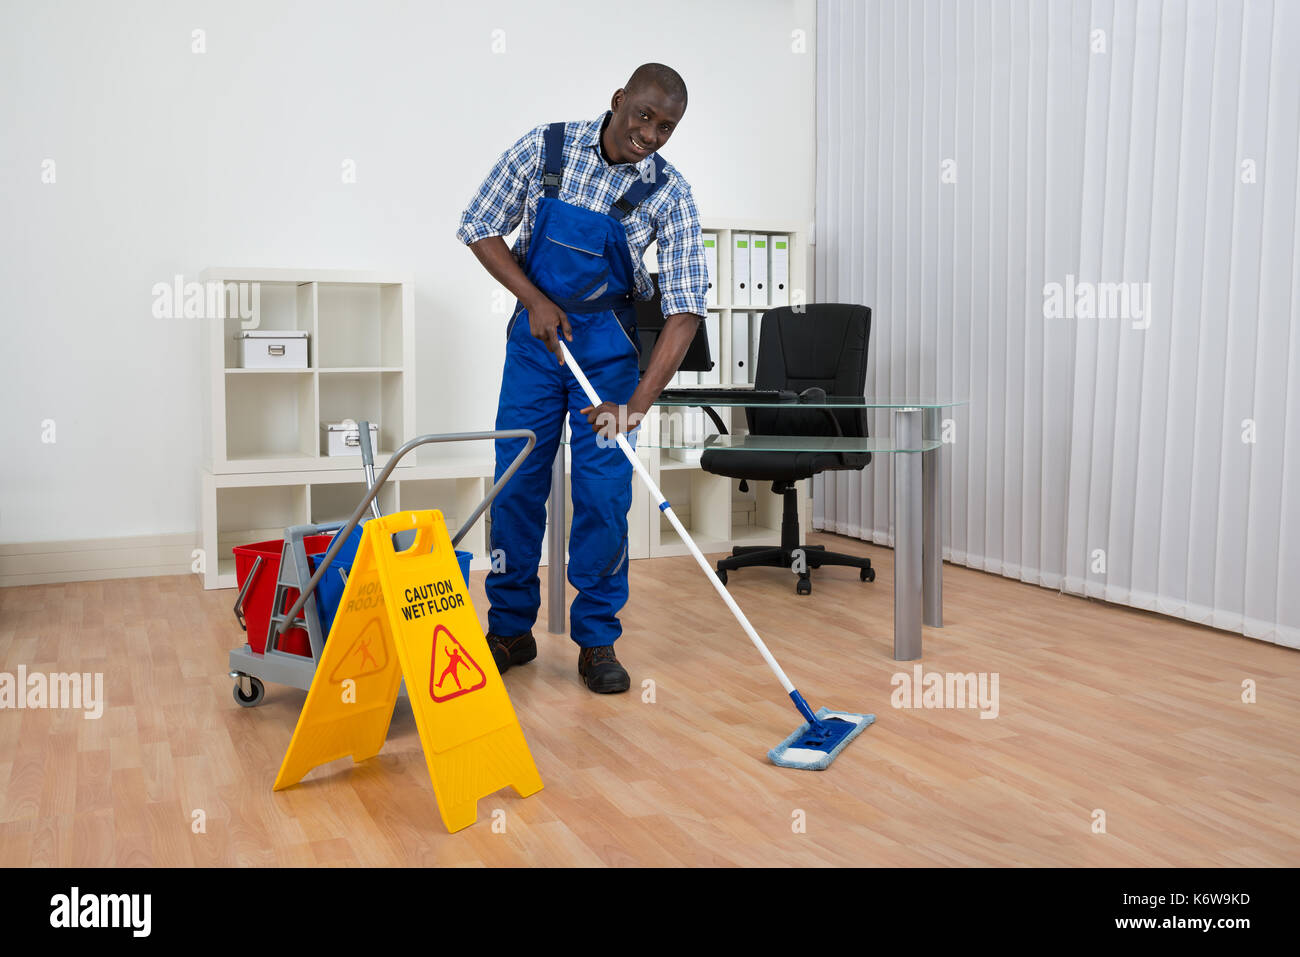 Young Happy Janitor Cleaning Floor With Wet Floor Sign - Stock Image